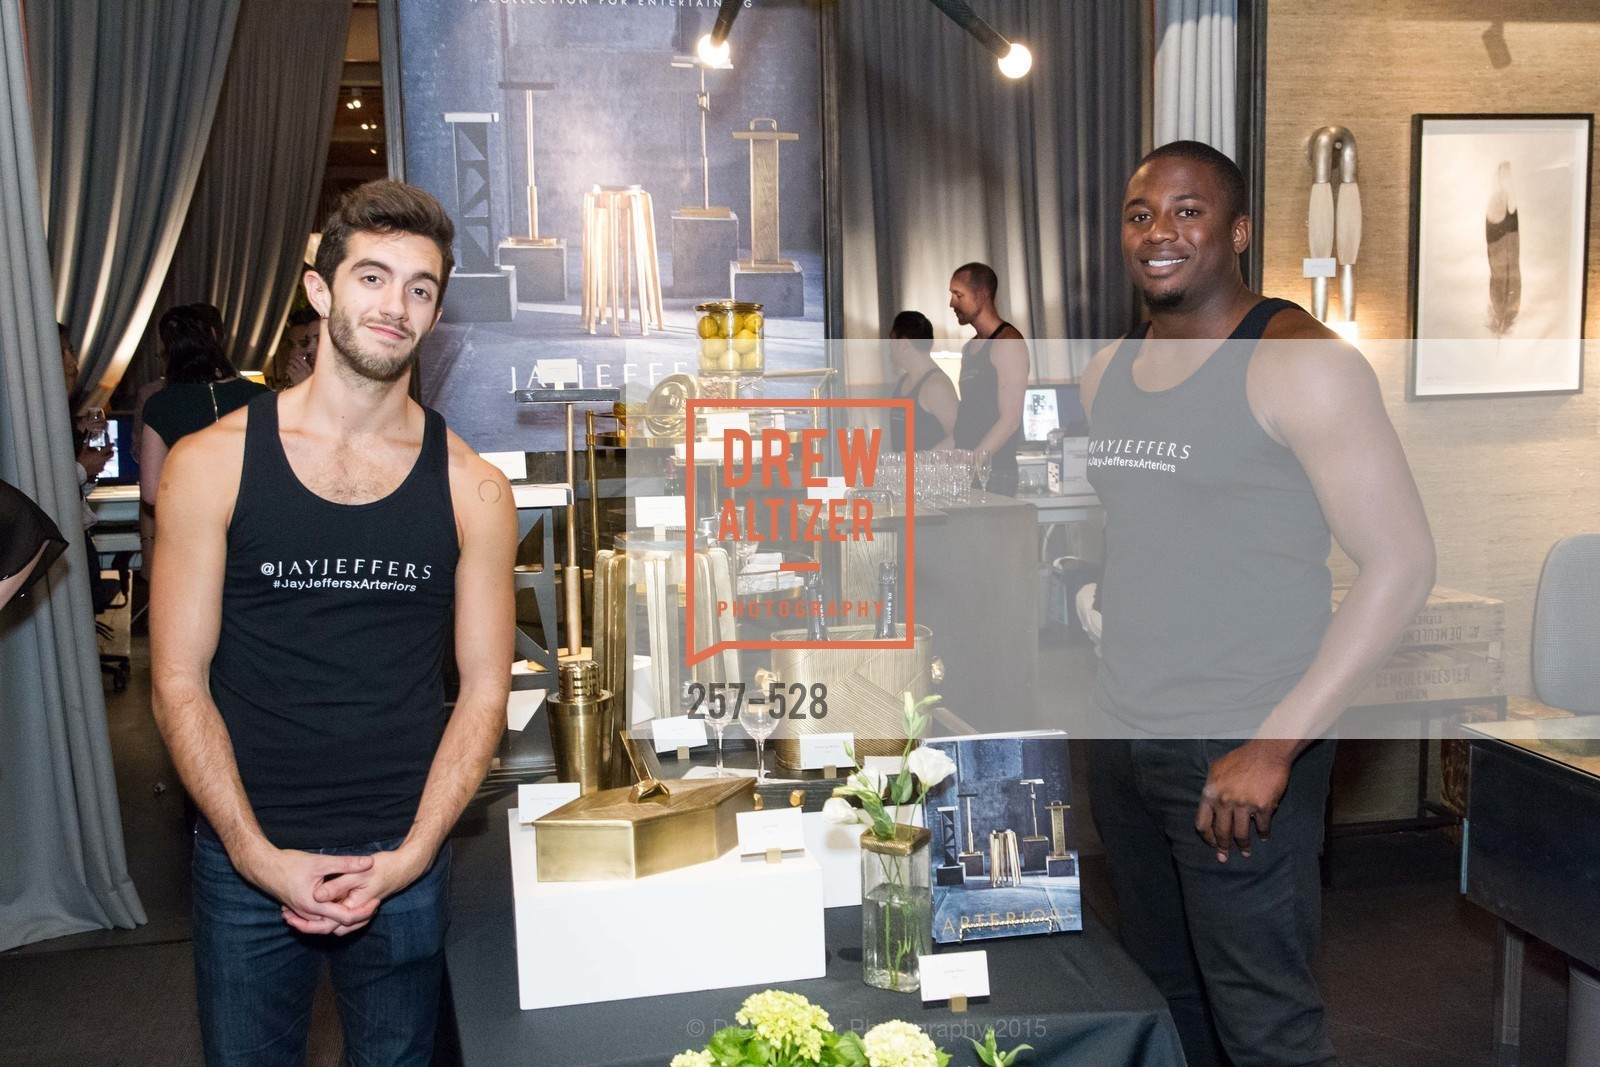 Nicholas Korkos, Zlanten Nwuz, Jay Jeffers for Arteriors Launch, Jay Jeffers - The Store. 1035 Post St, November 12th, 2015,Drew Altizer, Drew Altizer Photography, full-service agency, private events, San Francisco photographer, photographer california